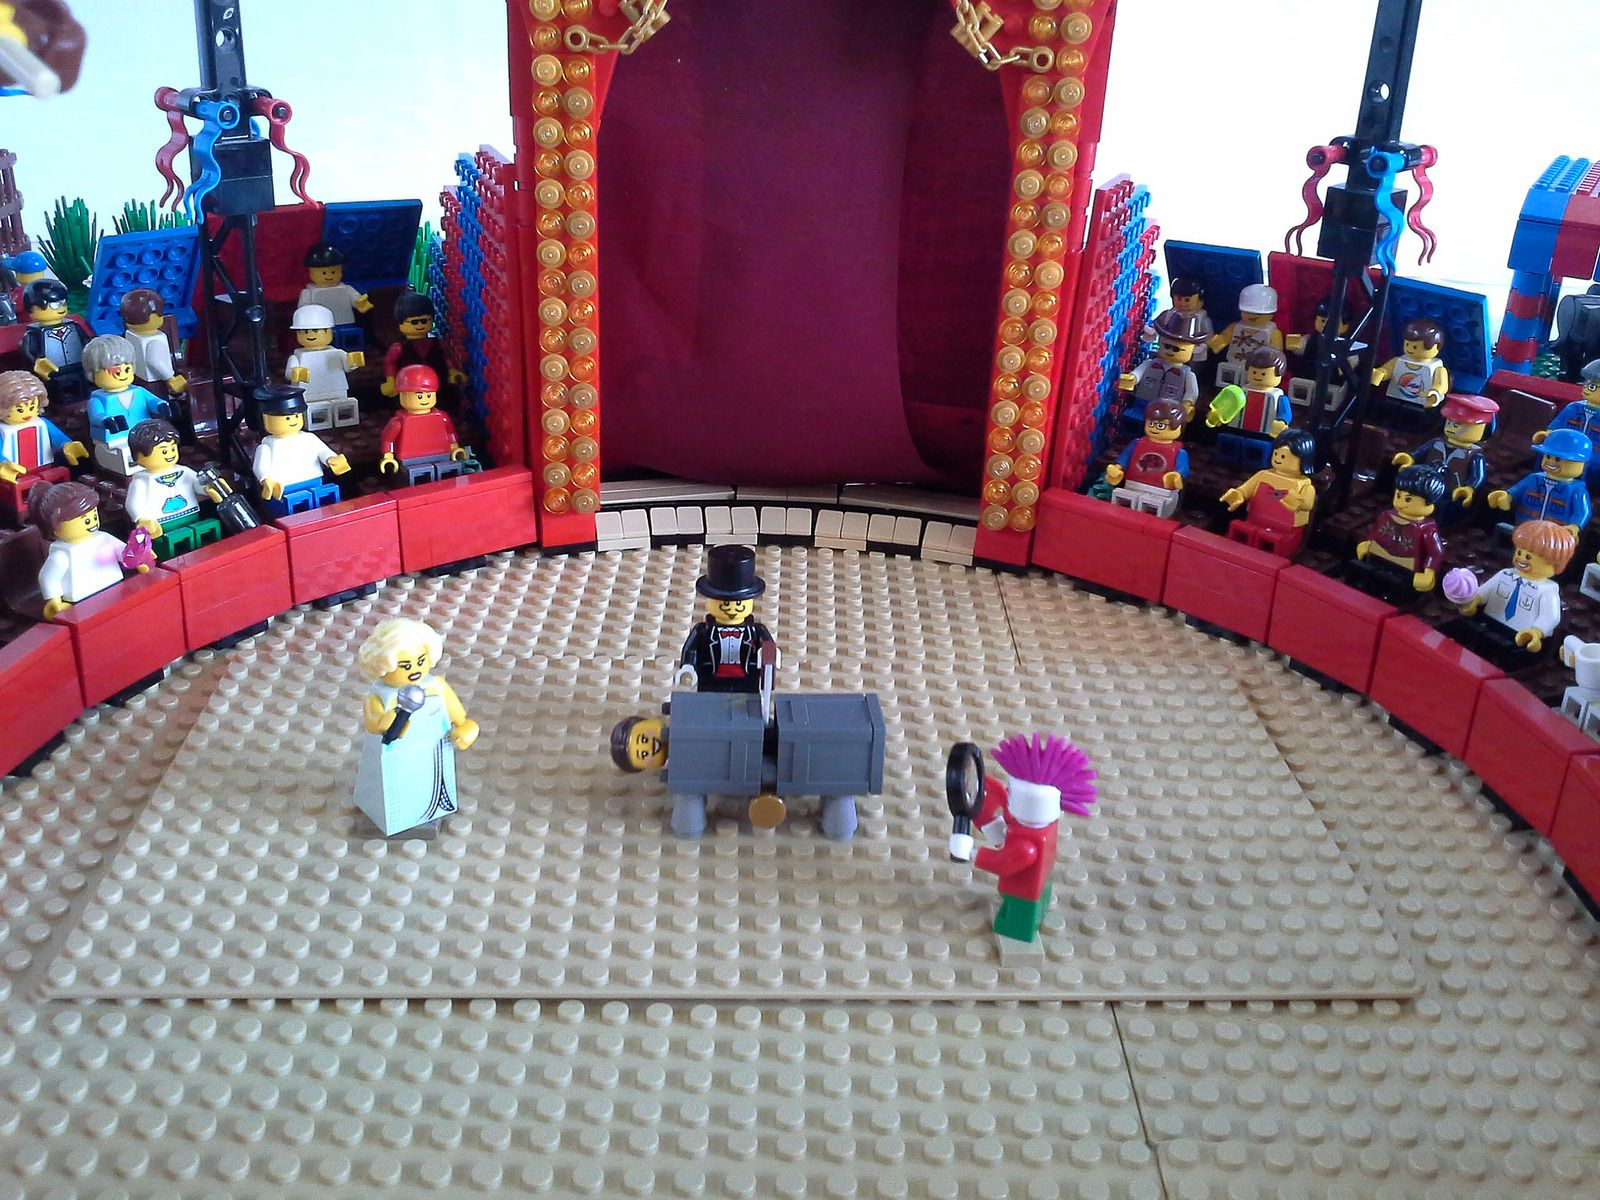 Lego at the Circus  | by boris.heinke